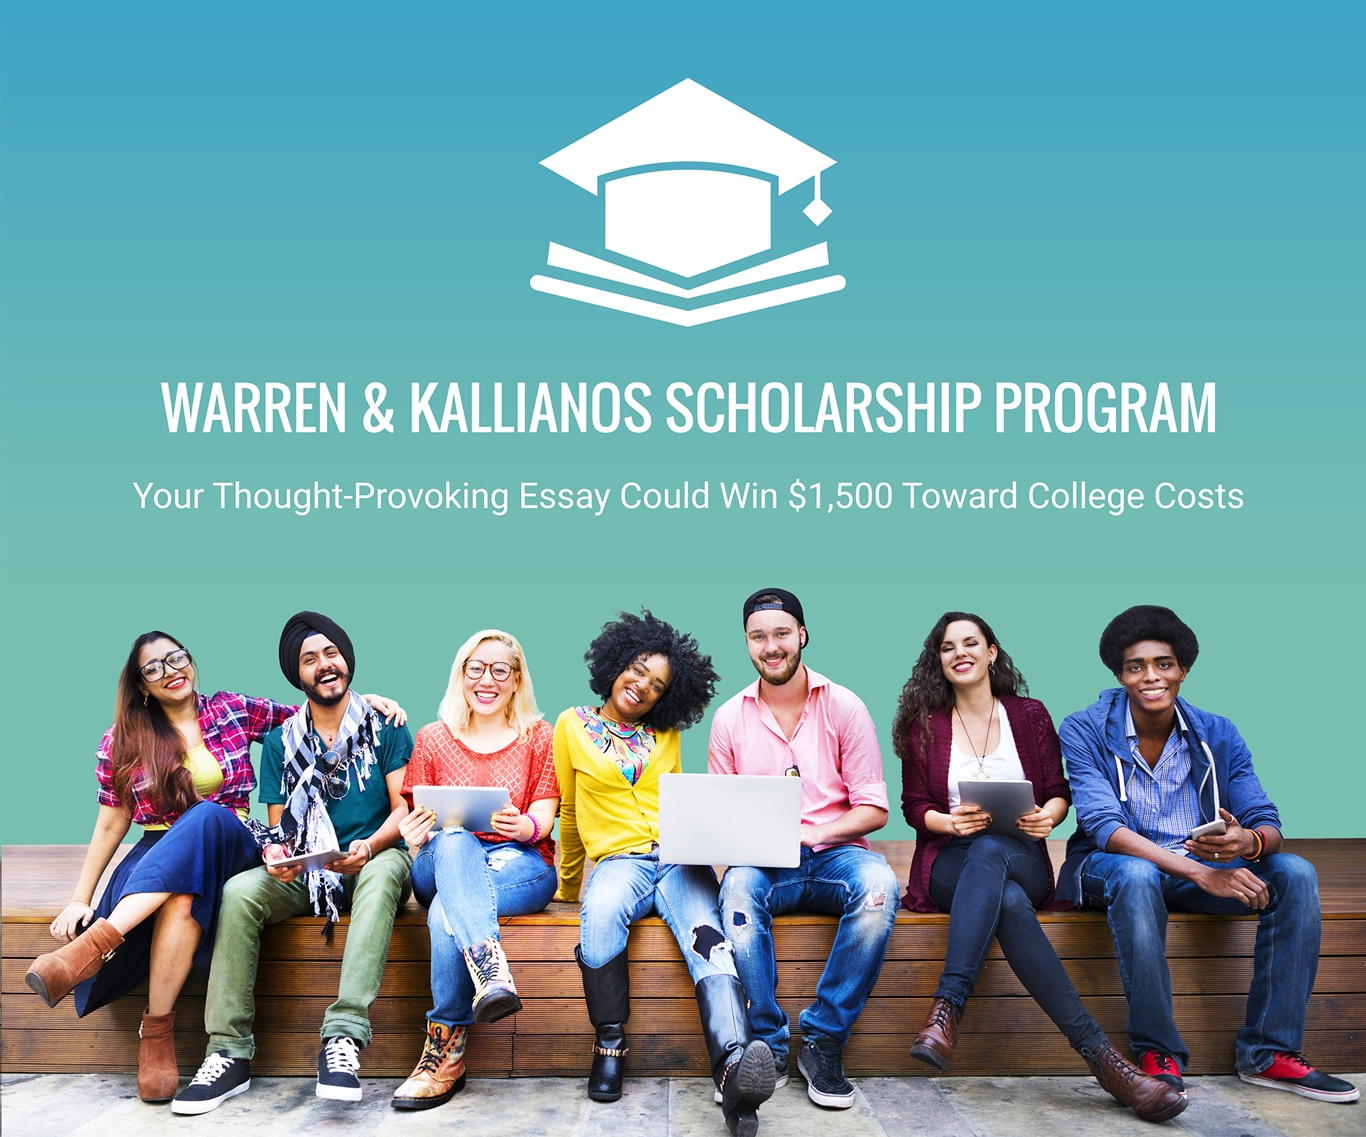 Warren Kallianos Scholarship Program